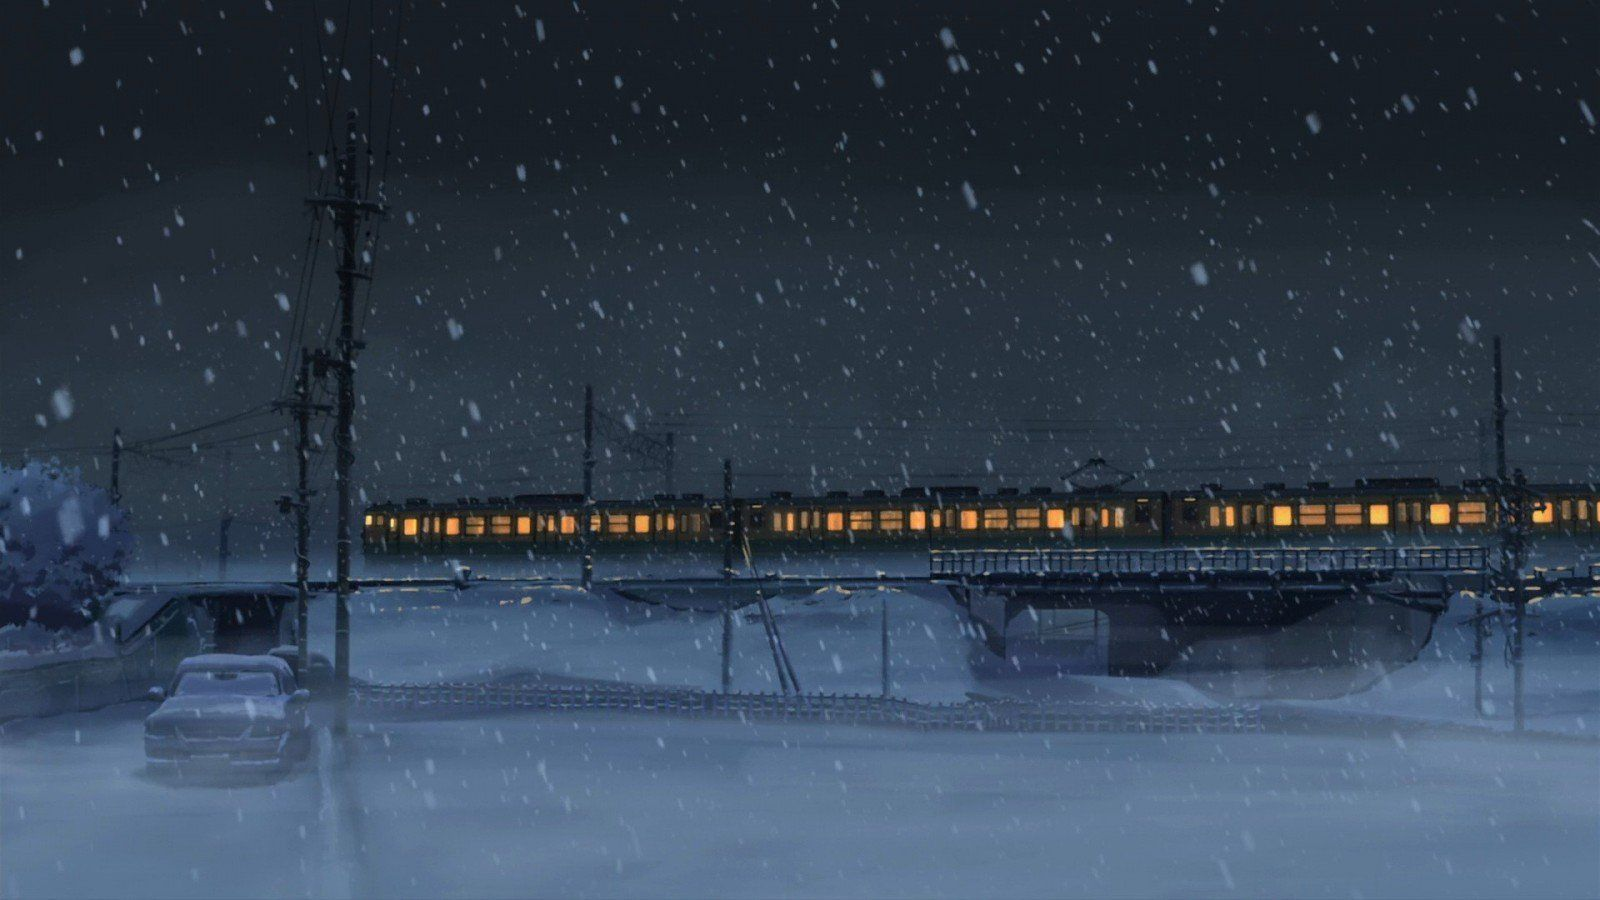 Irène DB on in 2020 Anime snow, Anime scenery, Scenery